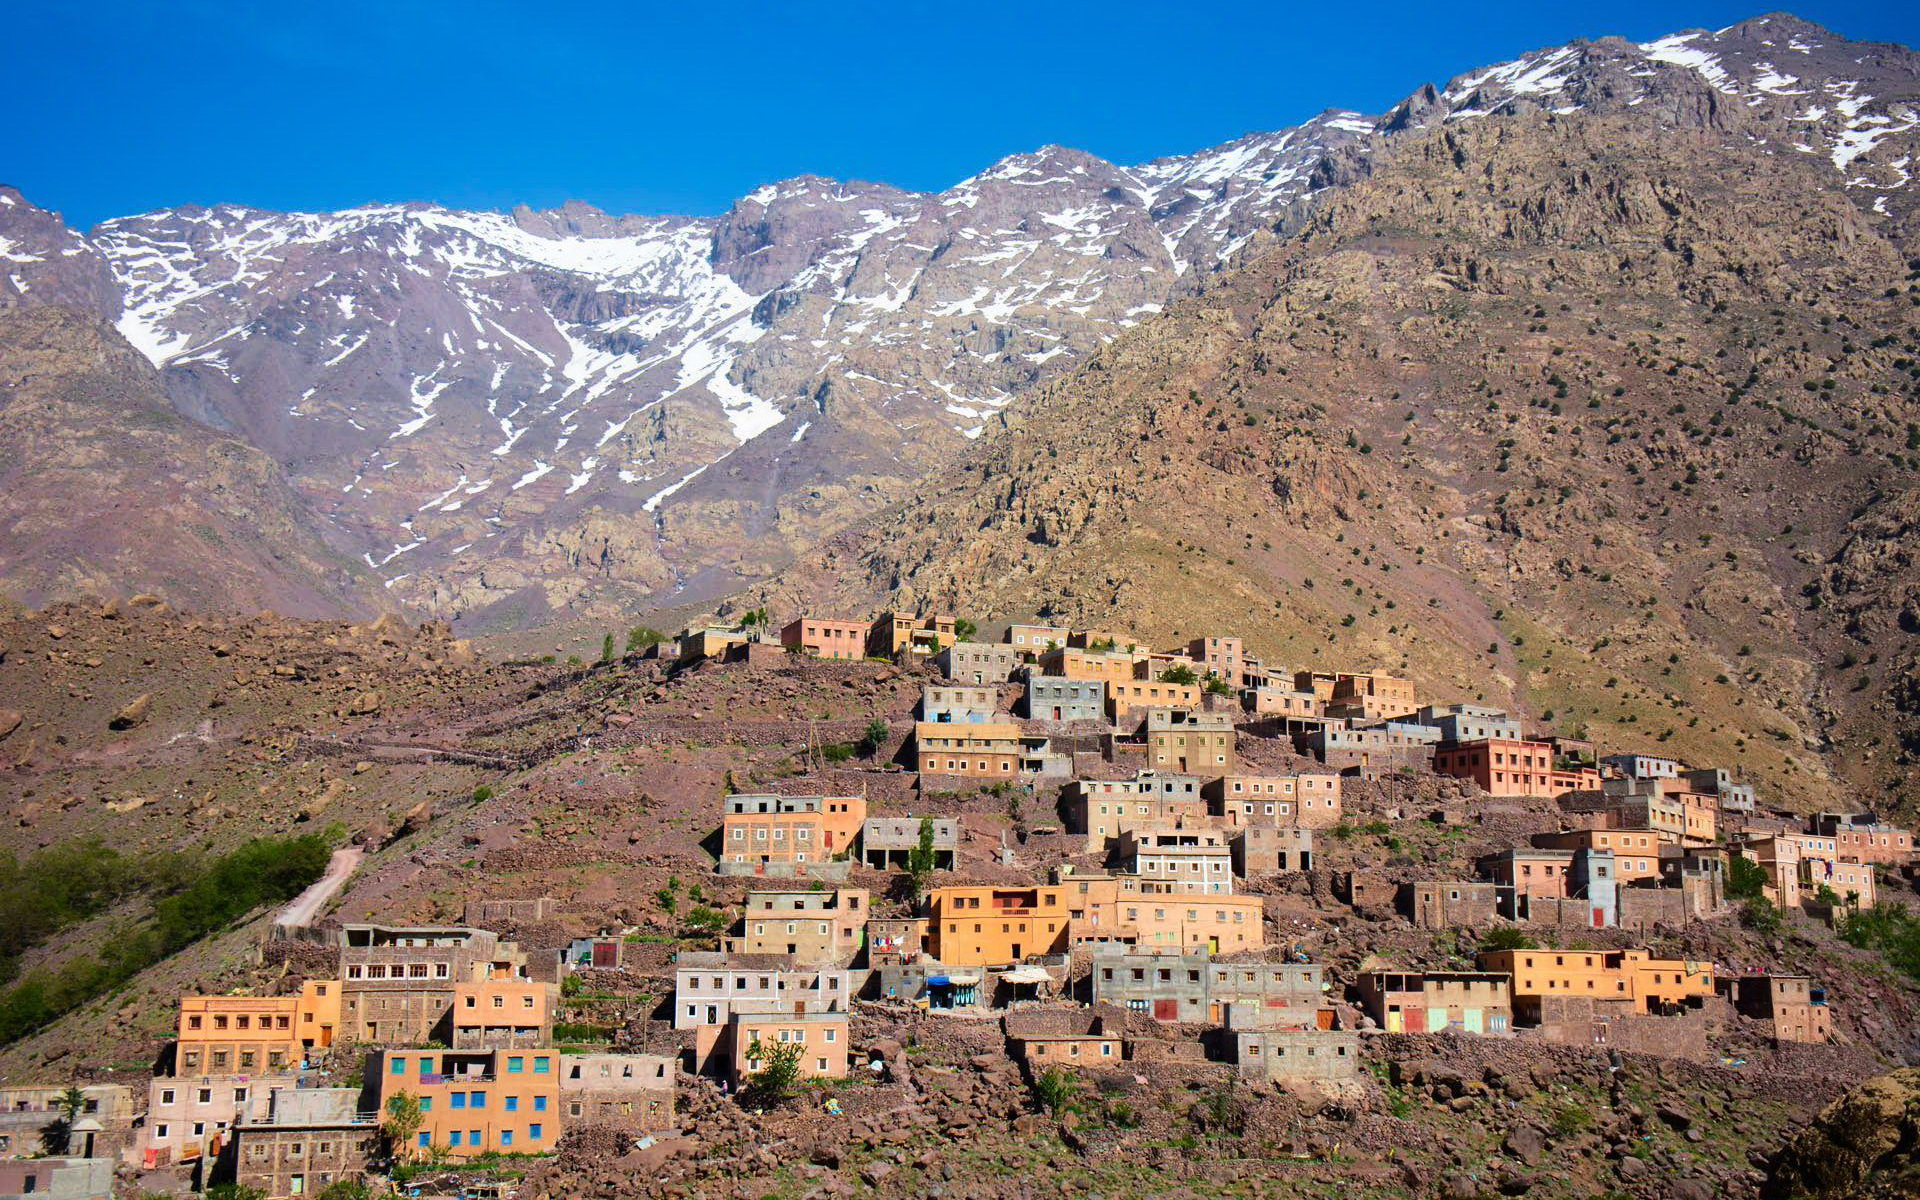 Private high Atlas mountains - 2 day trek